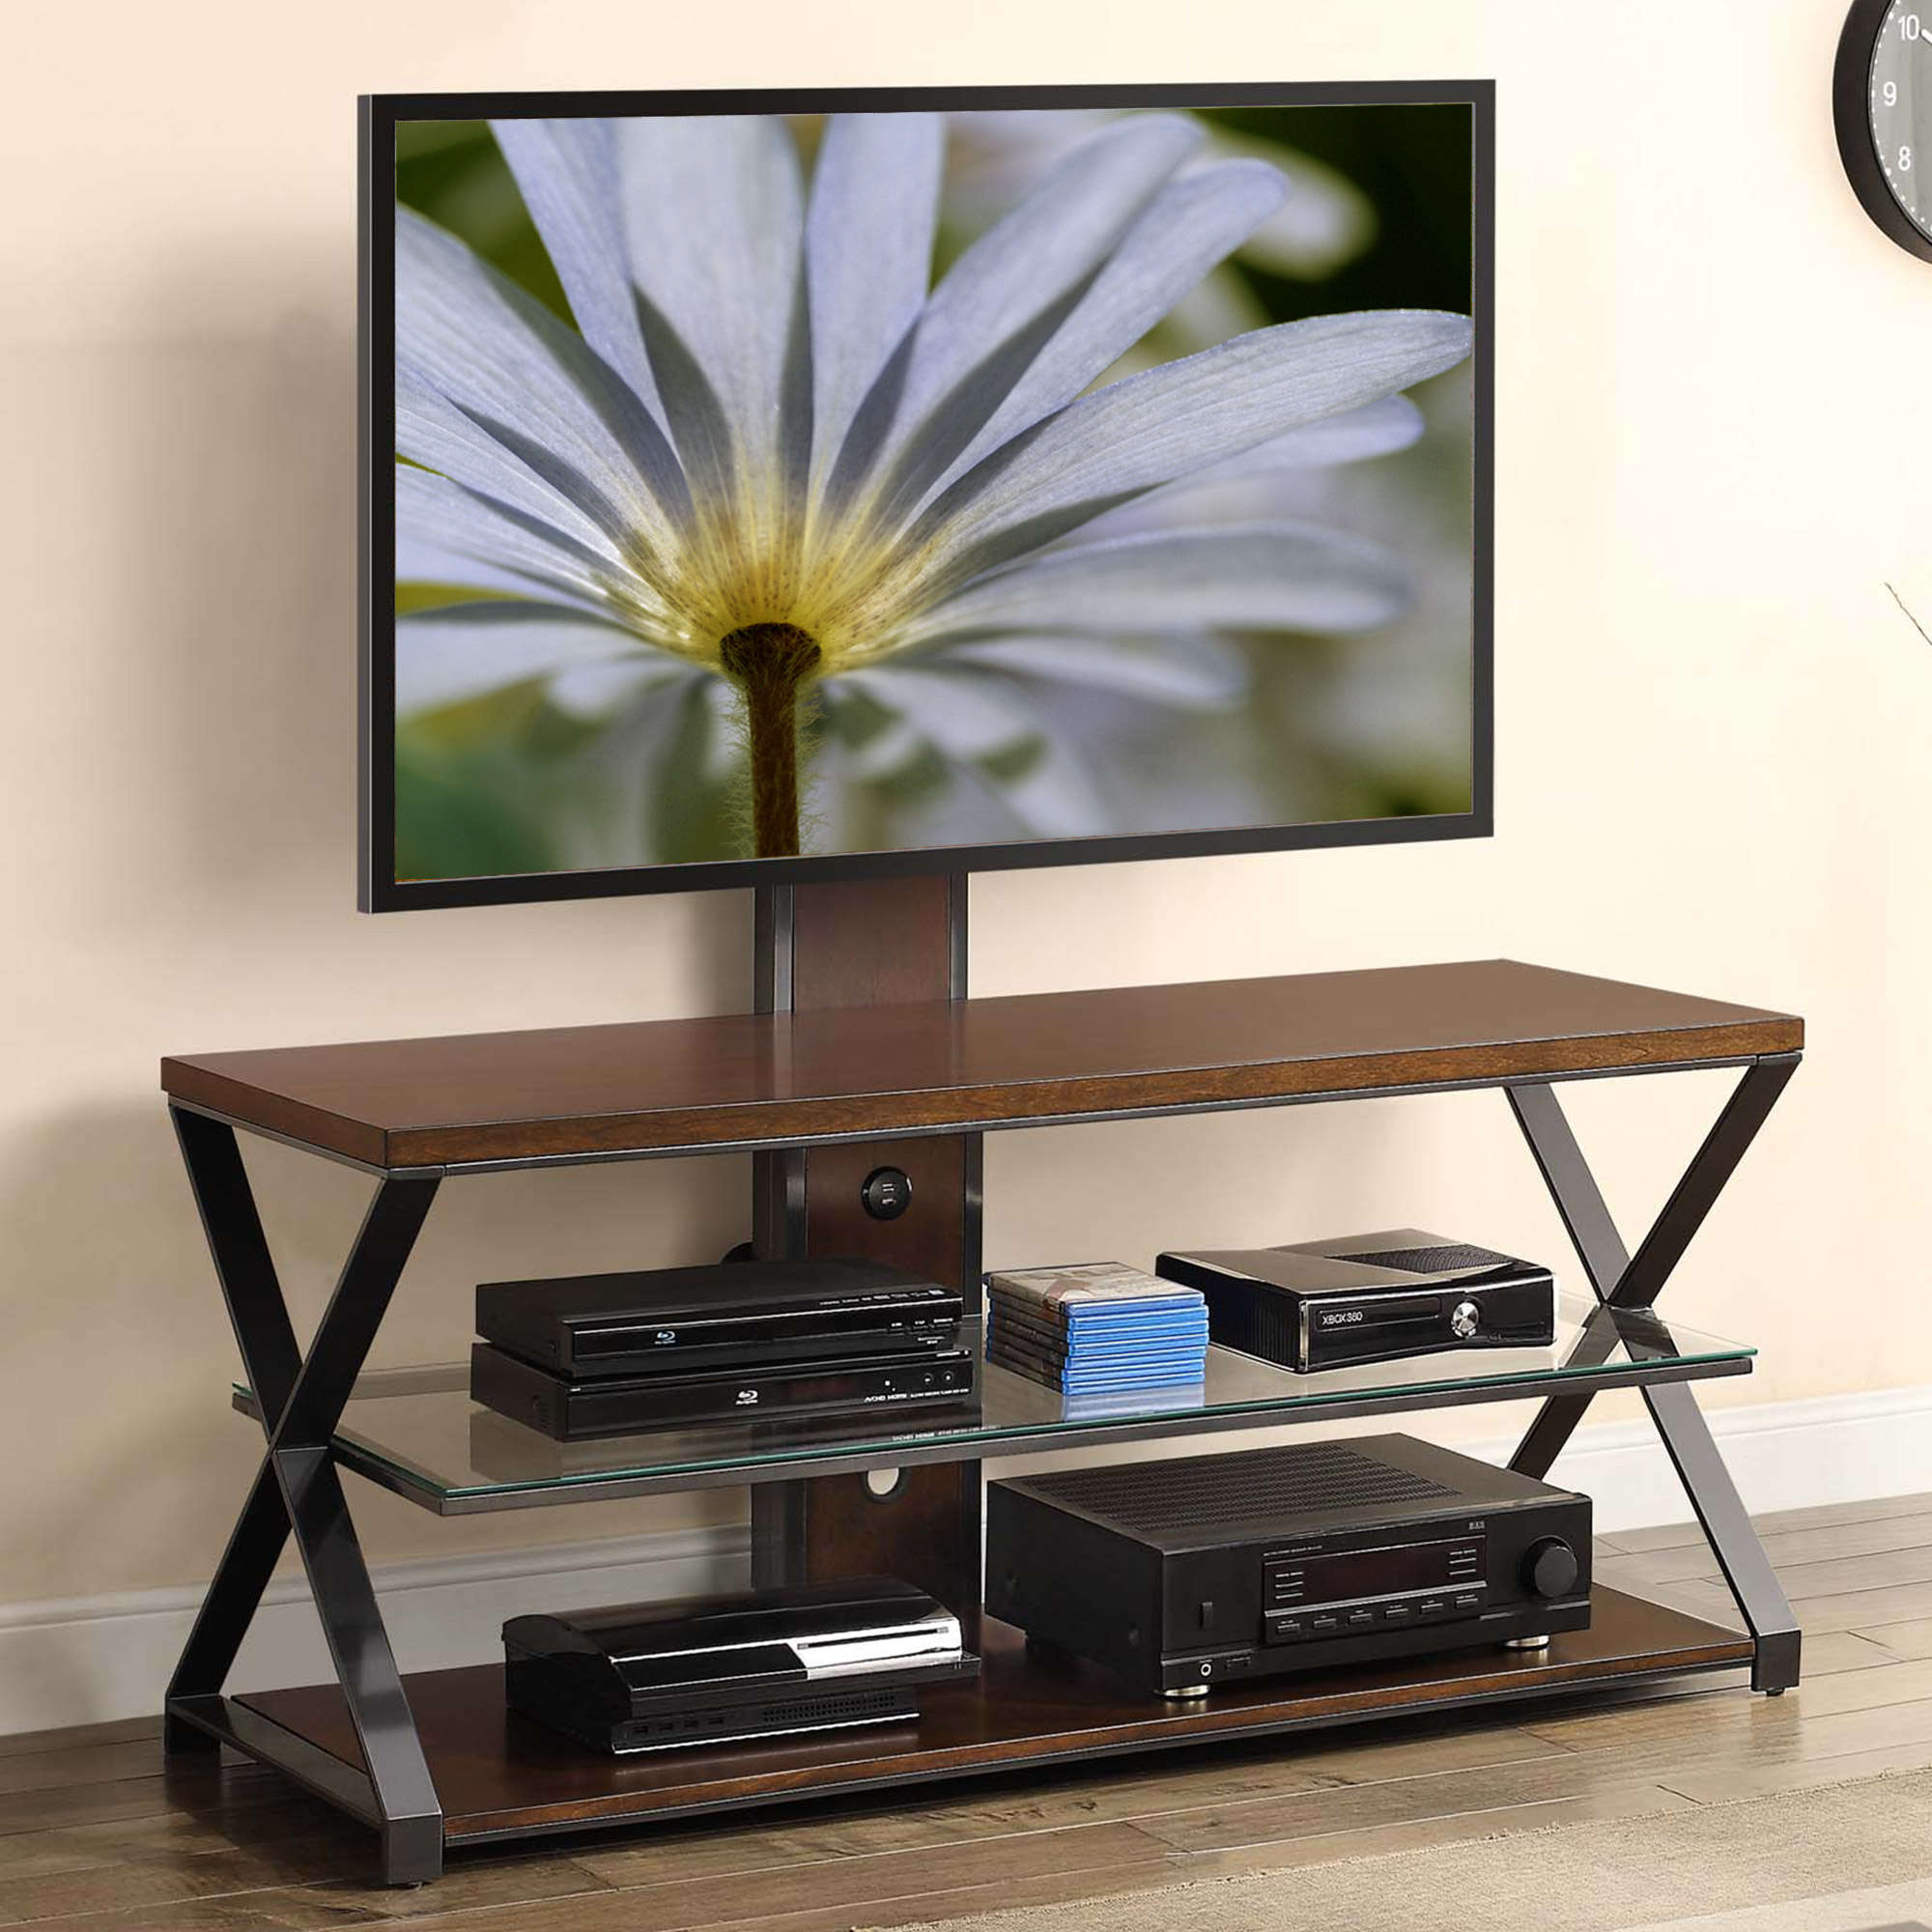 "Jaxon 3 In 1 Cognac Tv Stand For Tvs Up To 70"" – Walmart For Jaxon 71 Inch Tv Stands (View 3 of 30)"